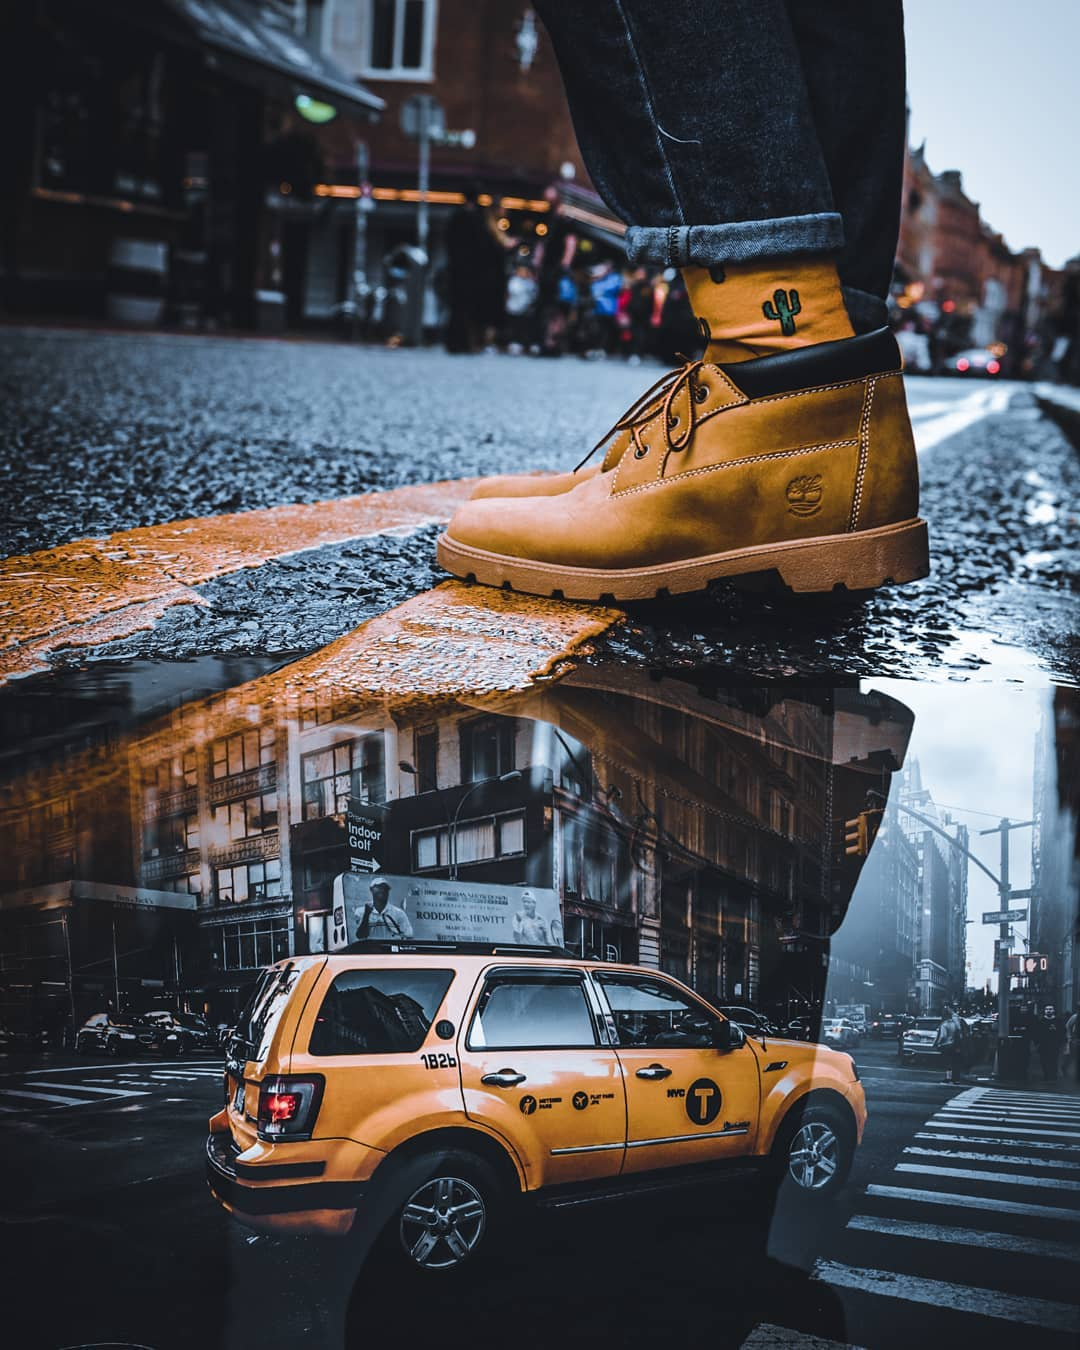 Beautiful and Creative Editing Photos by Egzon Muliqi